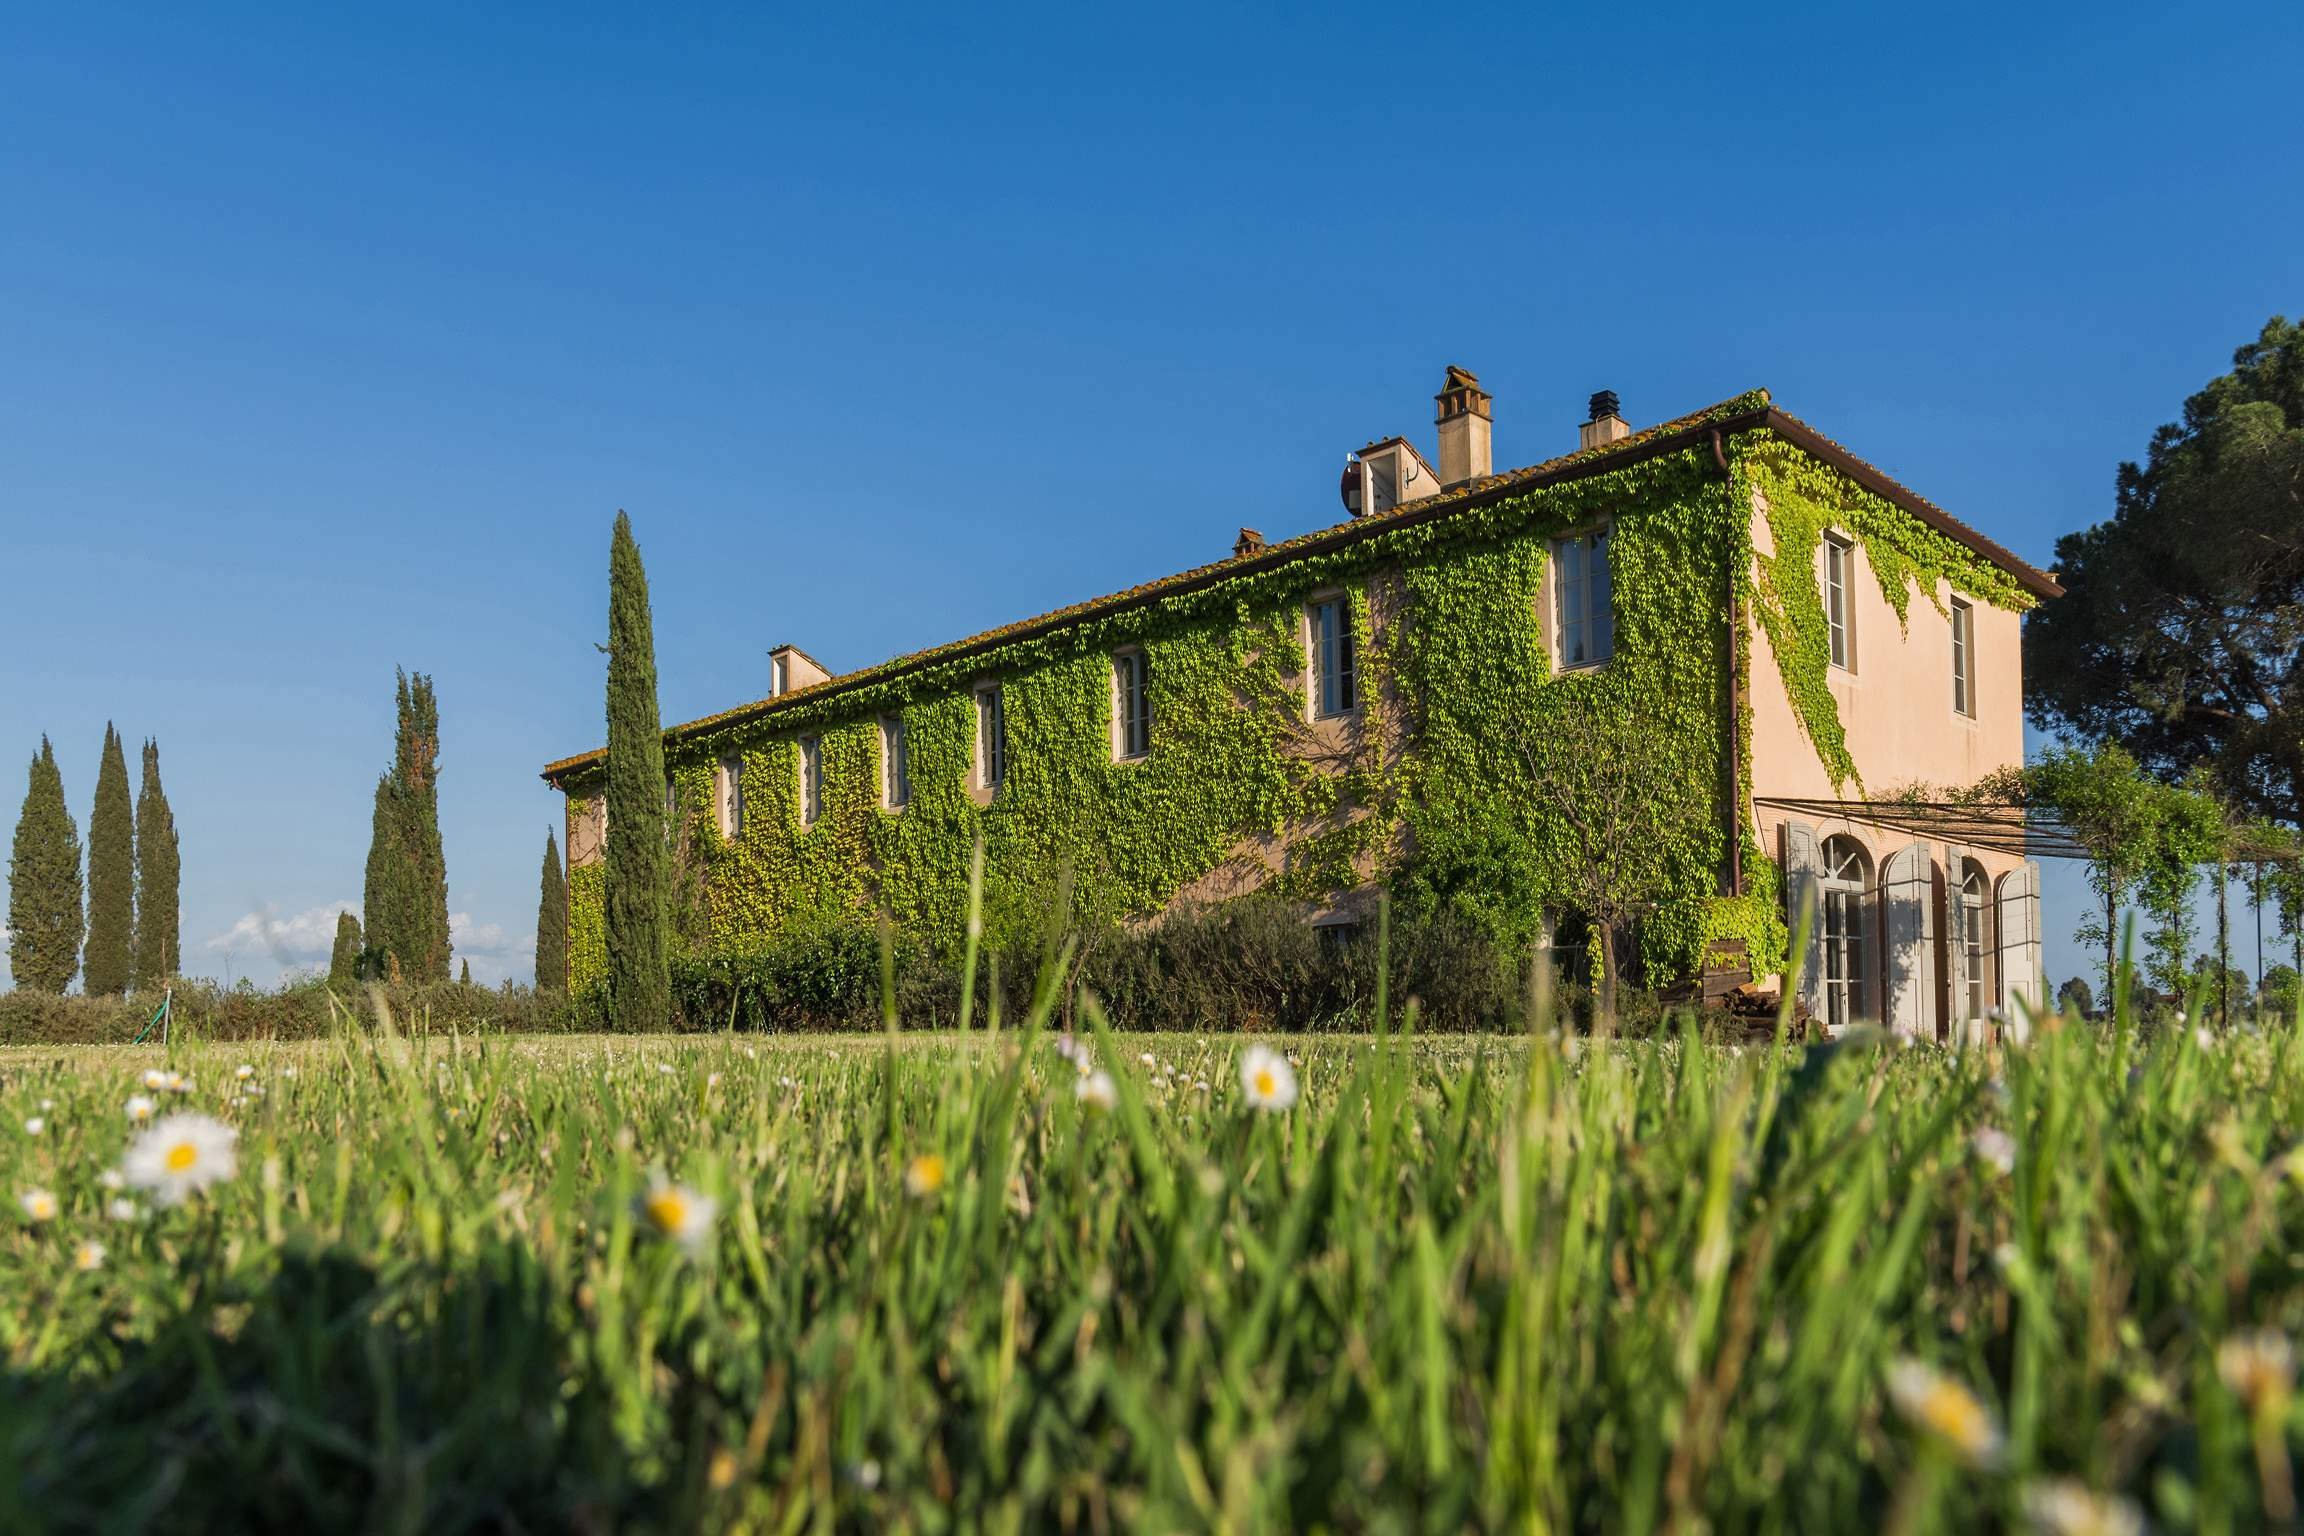 Villa Maremma 1, 7 bedroom villa in South Tuscany - Maremma, Tuscany Photo #17